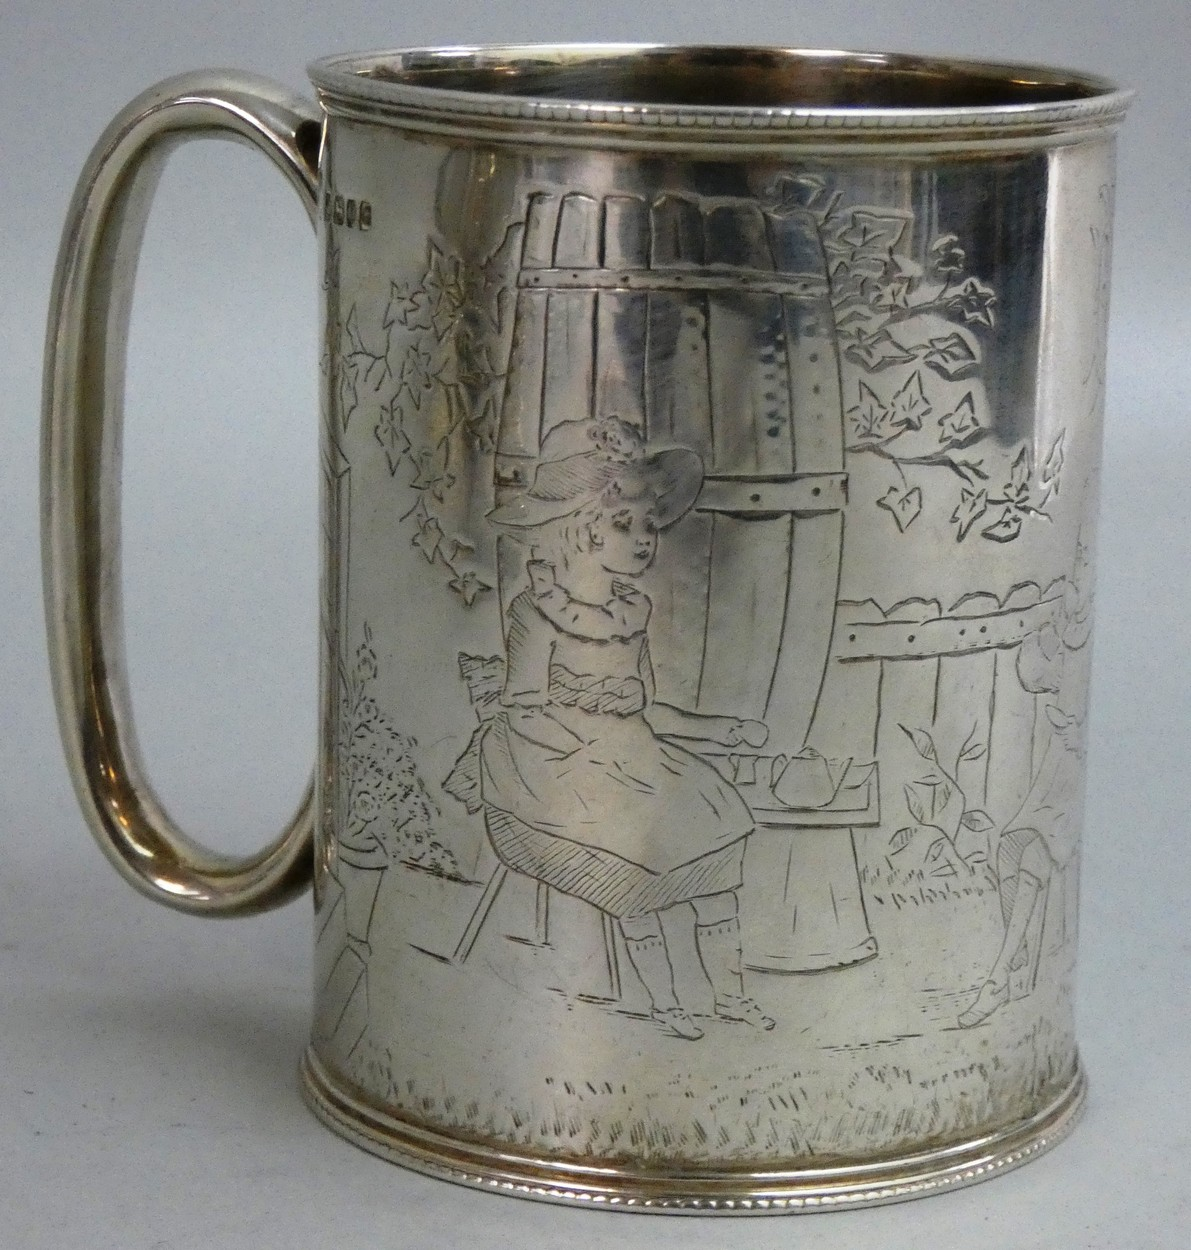 ROYAL AIR FORCE 74 SQUADRON BEER STEIN